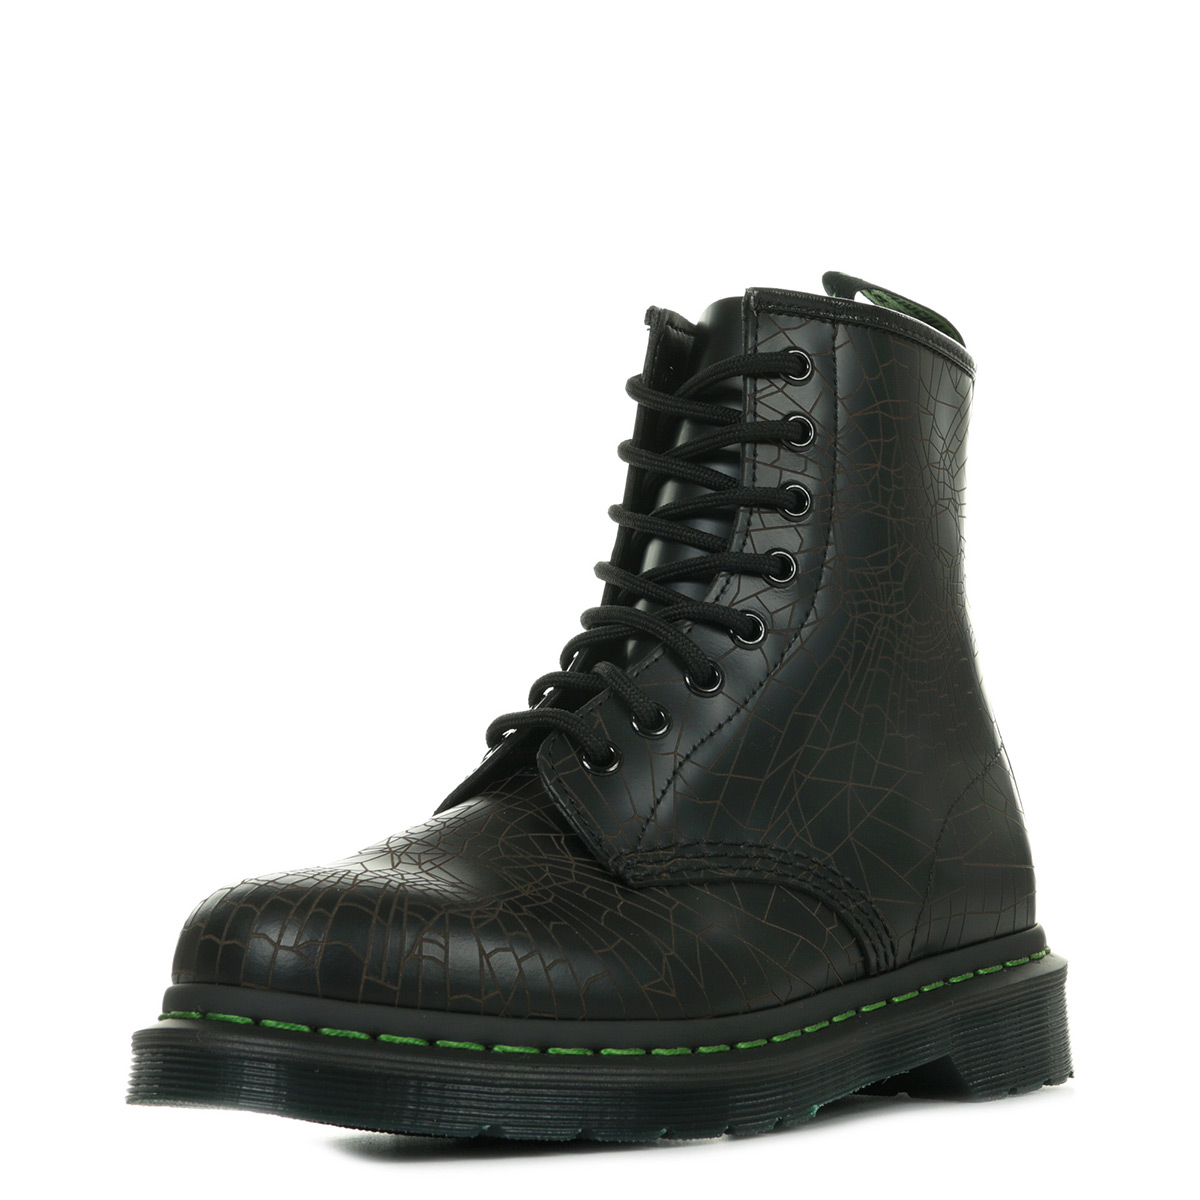 Smooth Web Skull DrMartens SW 23901001Boots femme 1460 Nk0wPO8nXZ